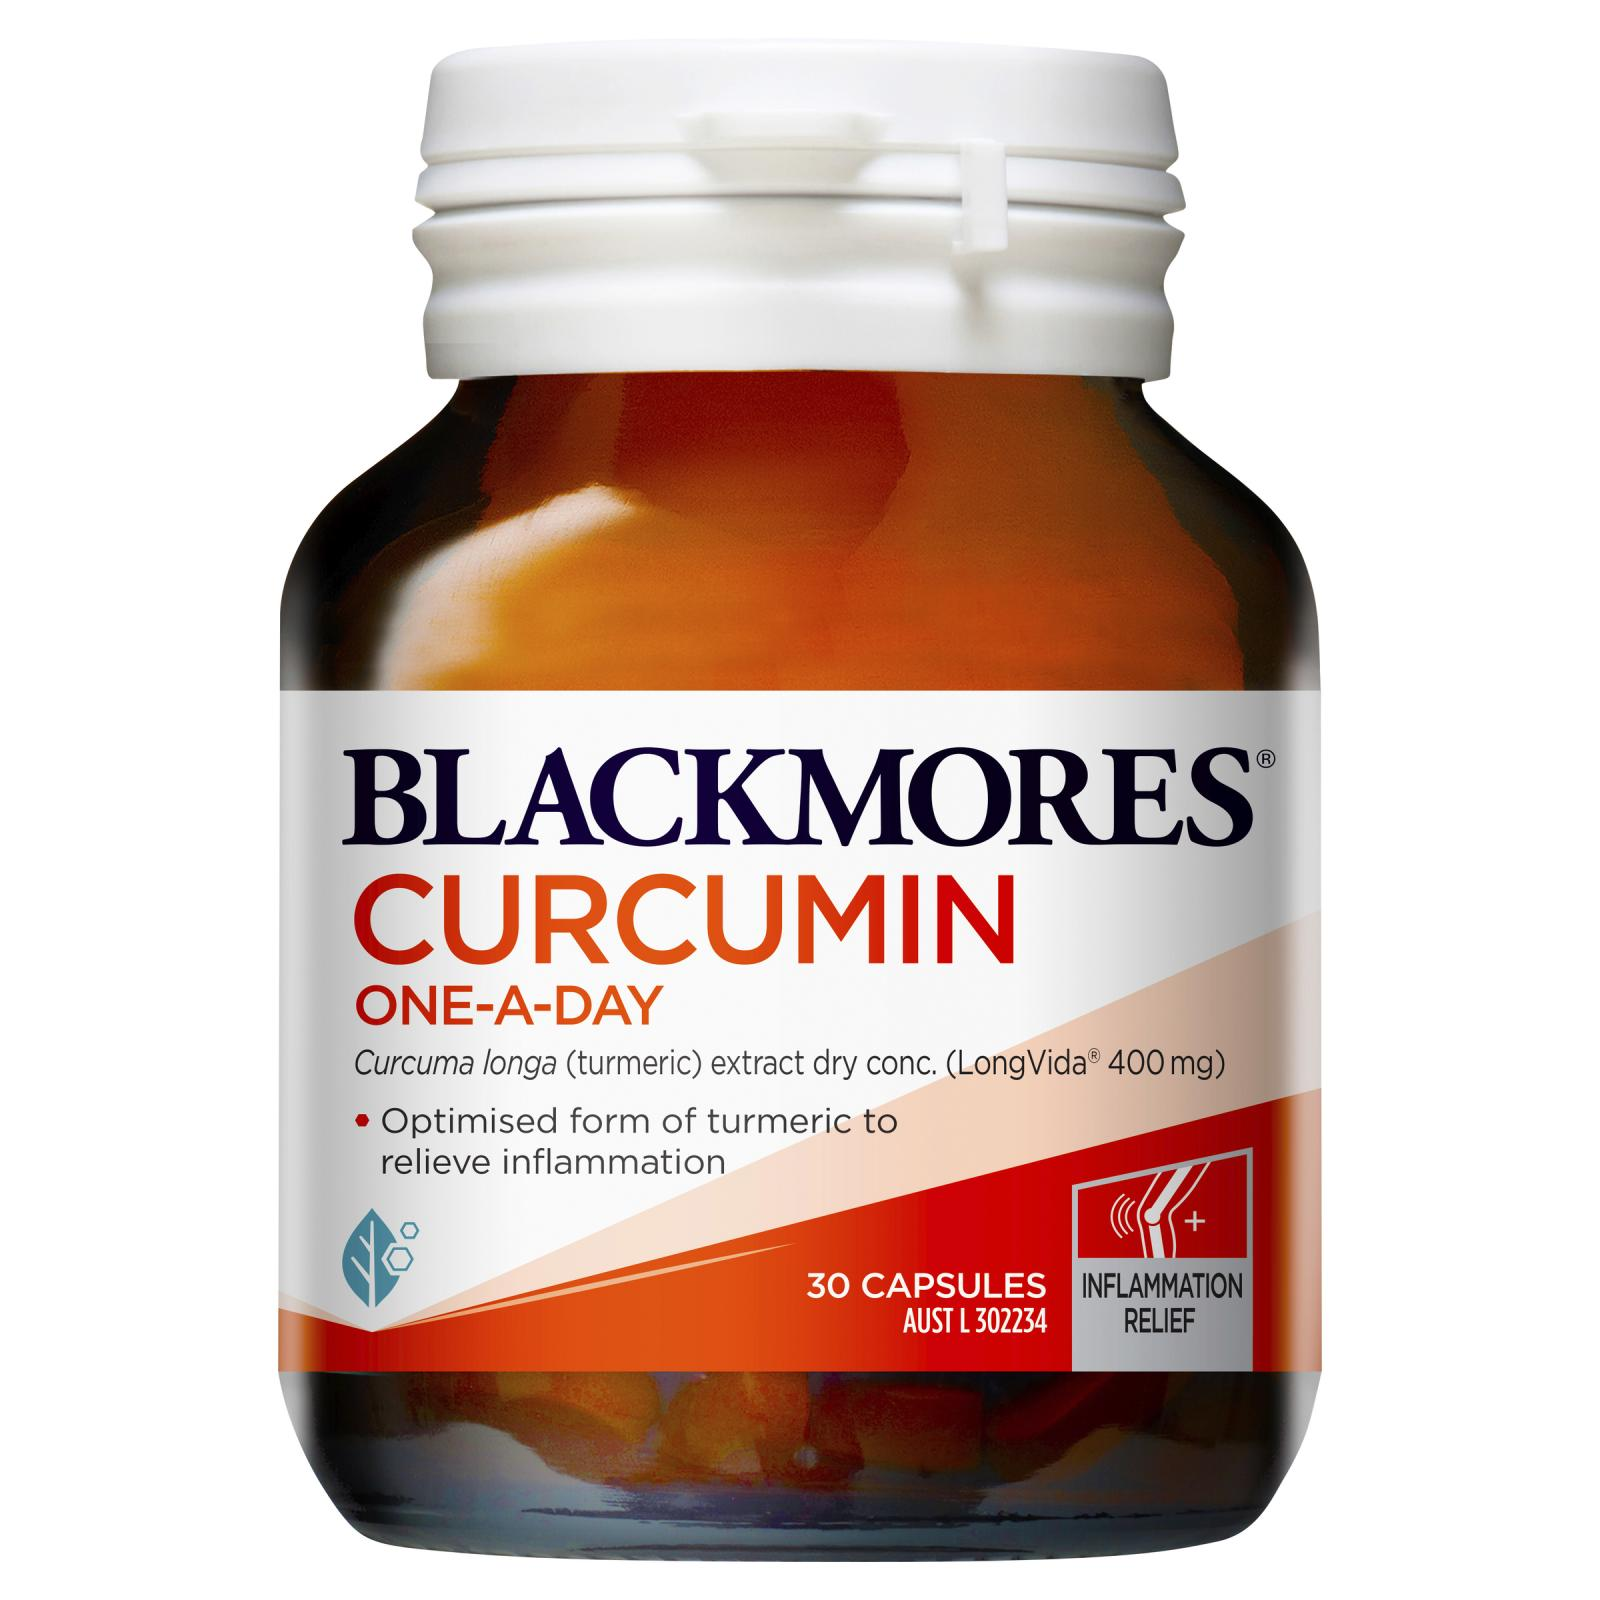 Blackmores Curcumin One-A-Day 30 Capsules